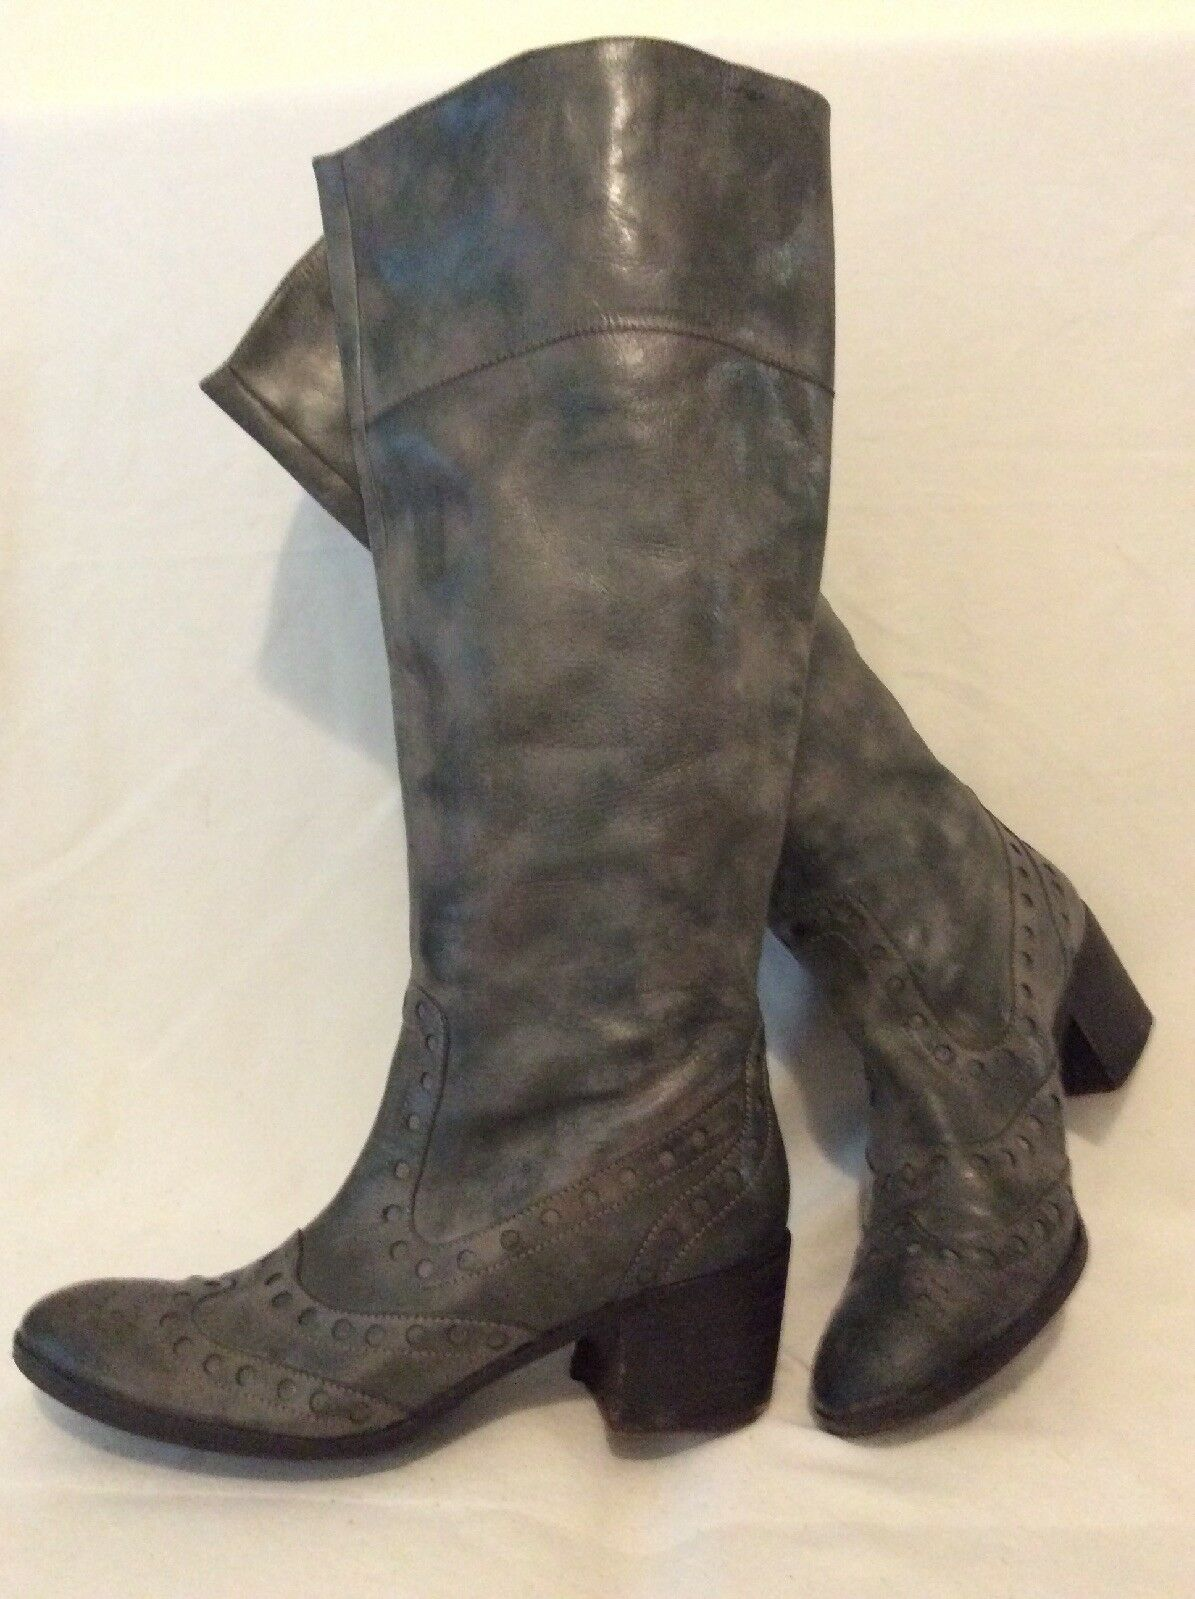 ASH Grey Knee High Leather Boots Size 41